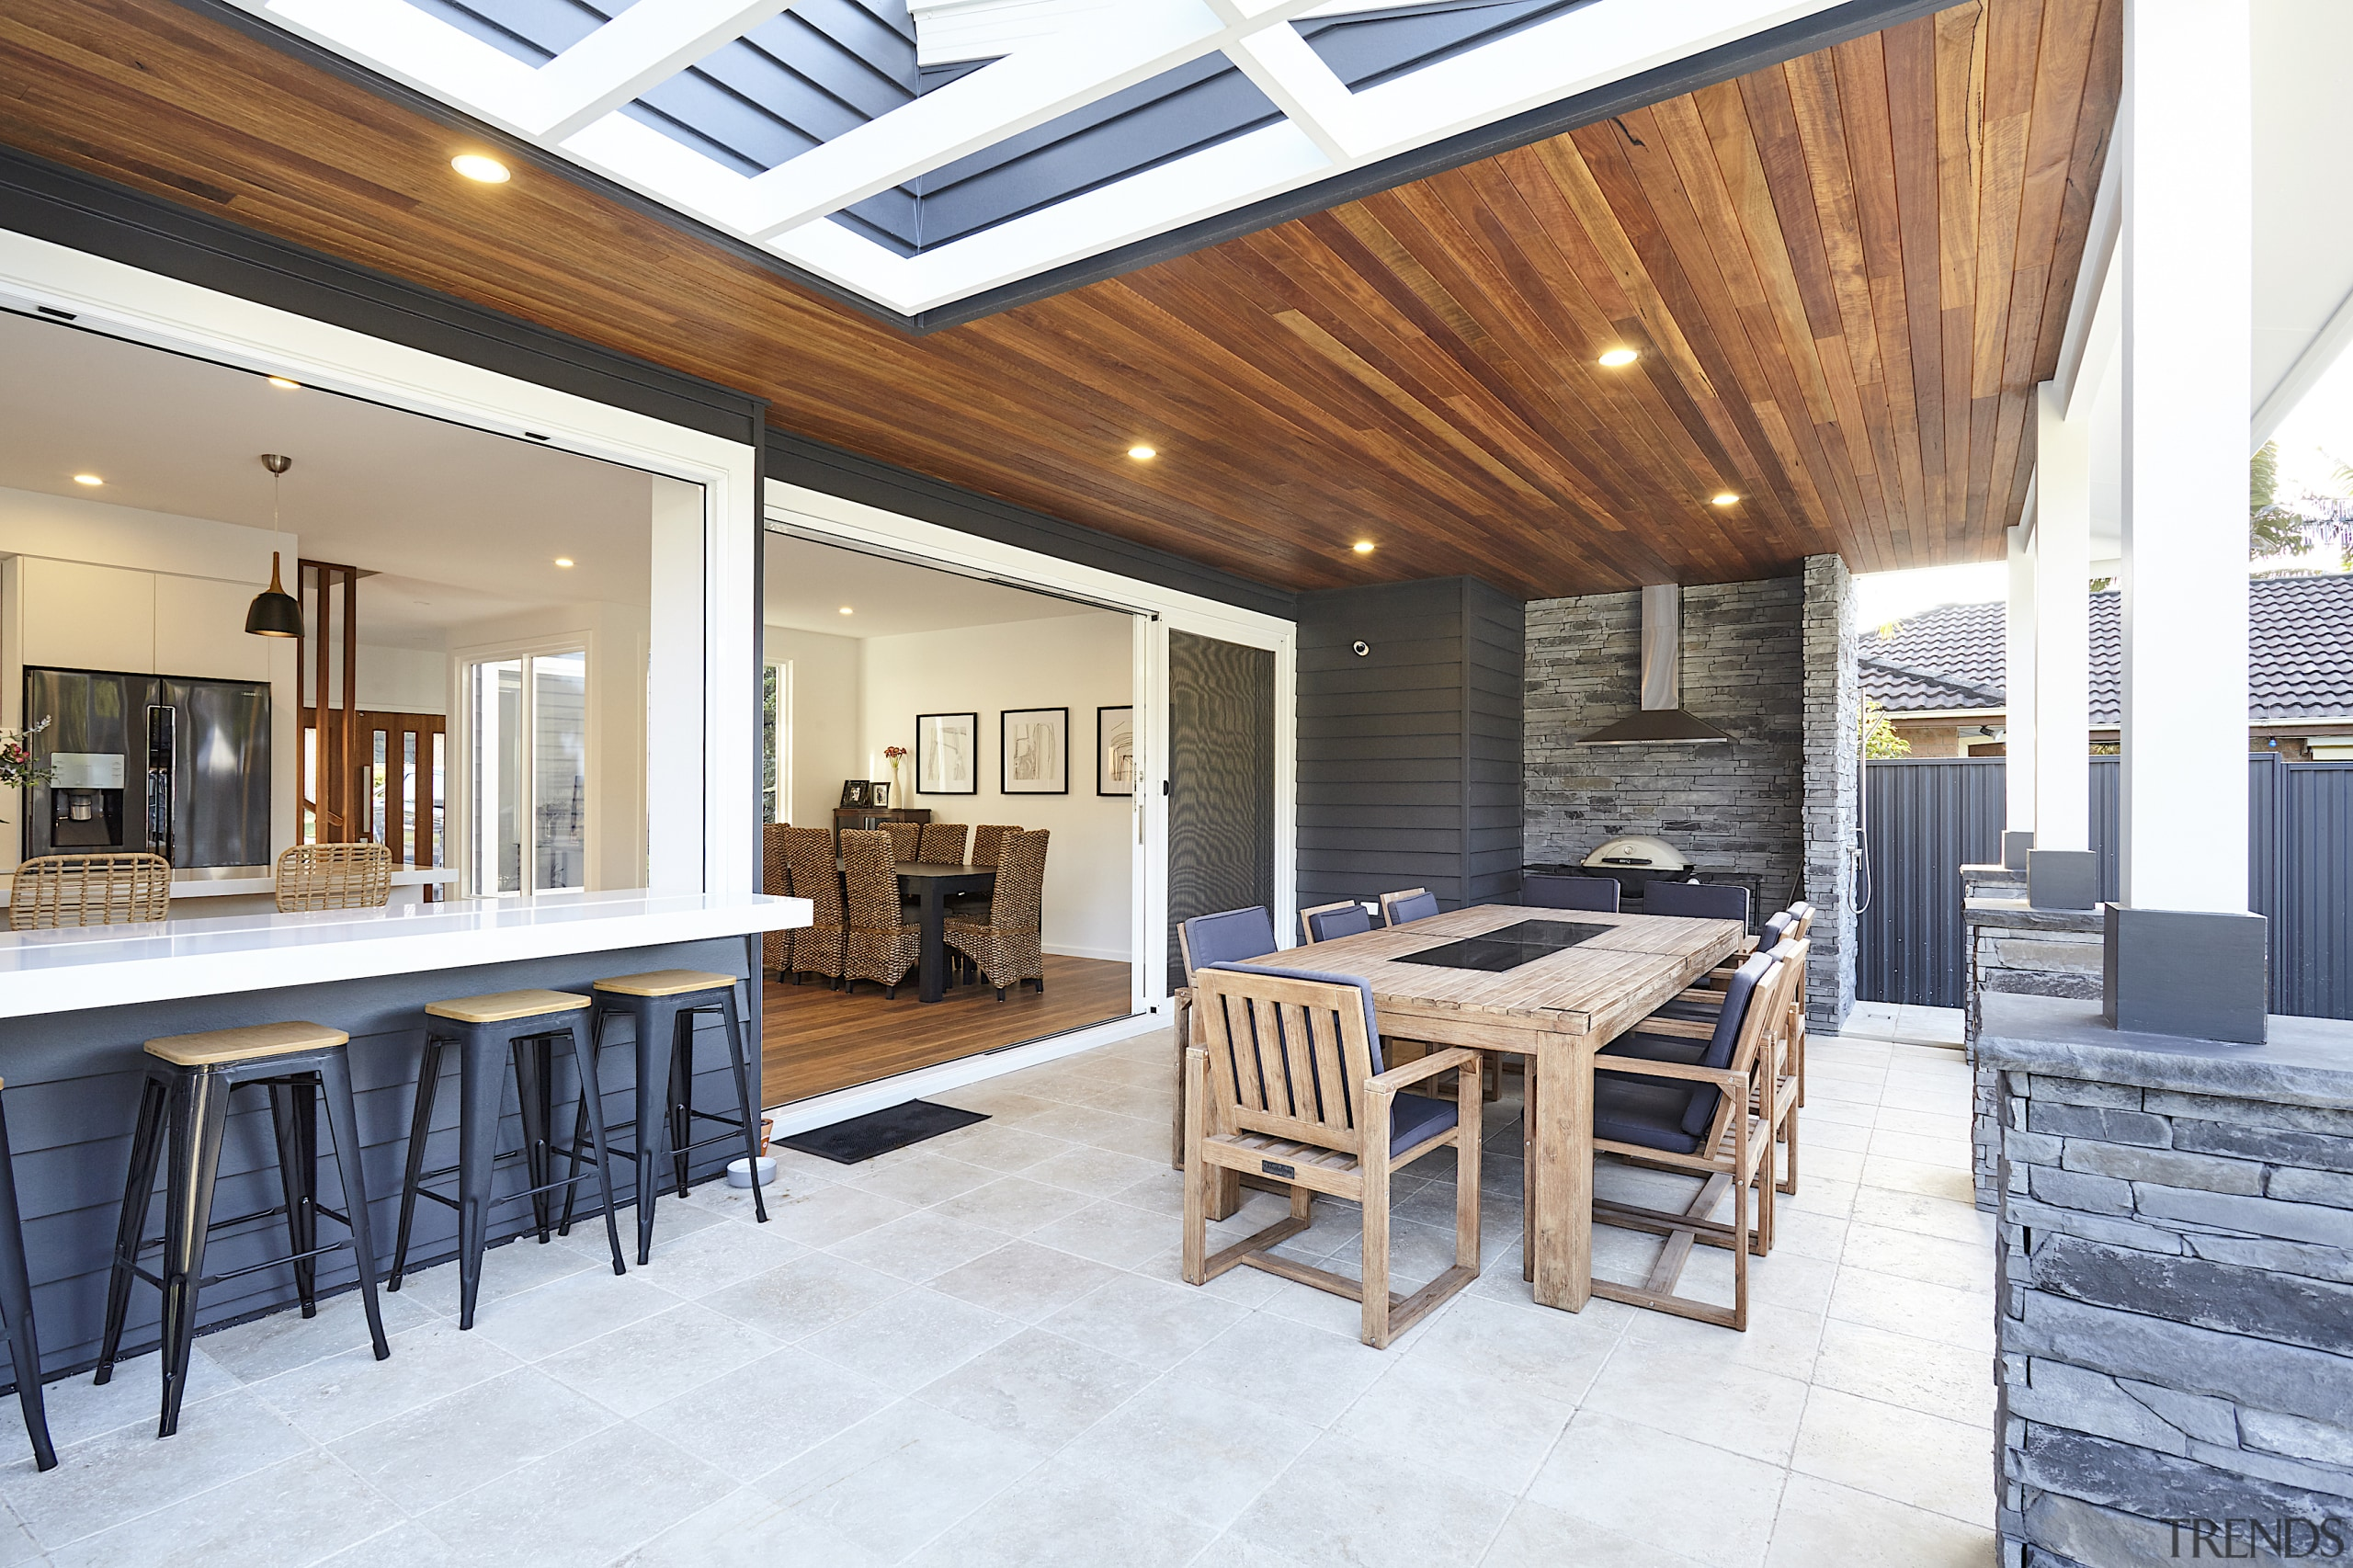 The covered outdoor rooms morphs into the open